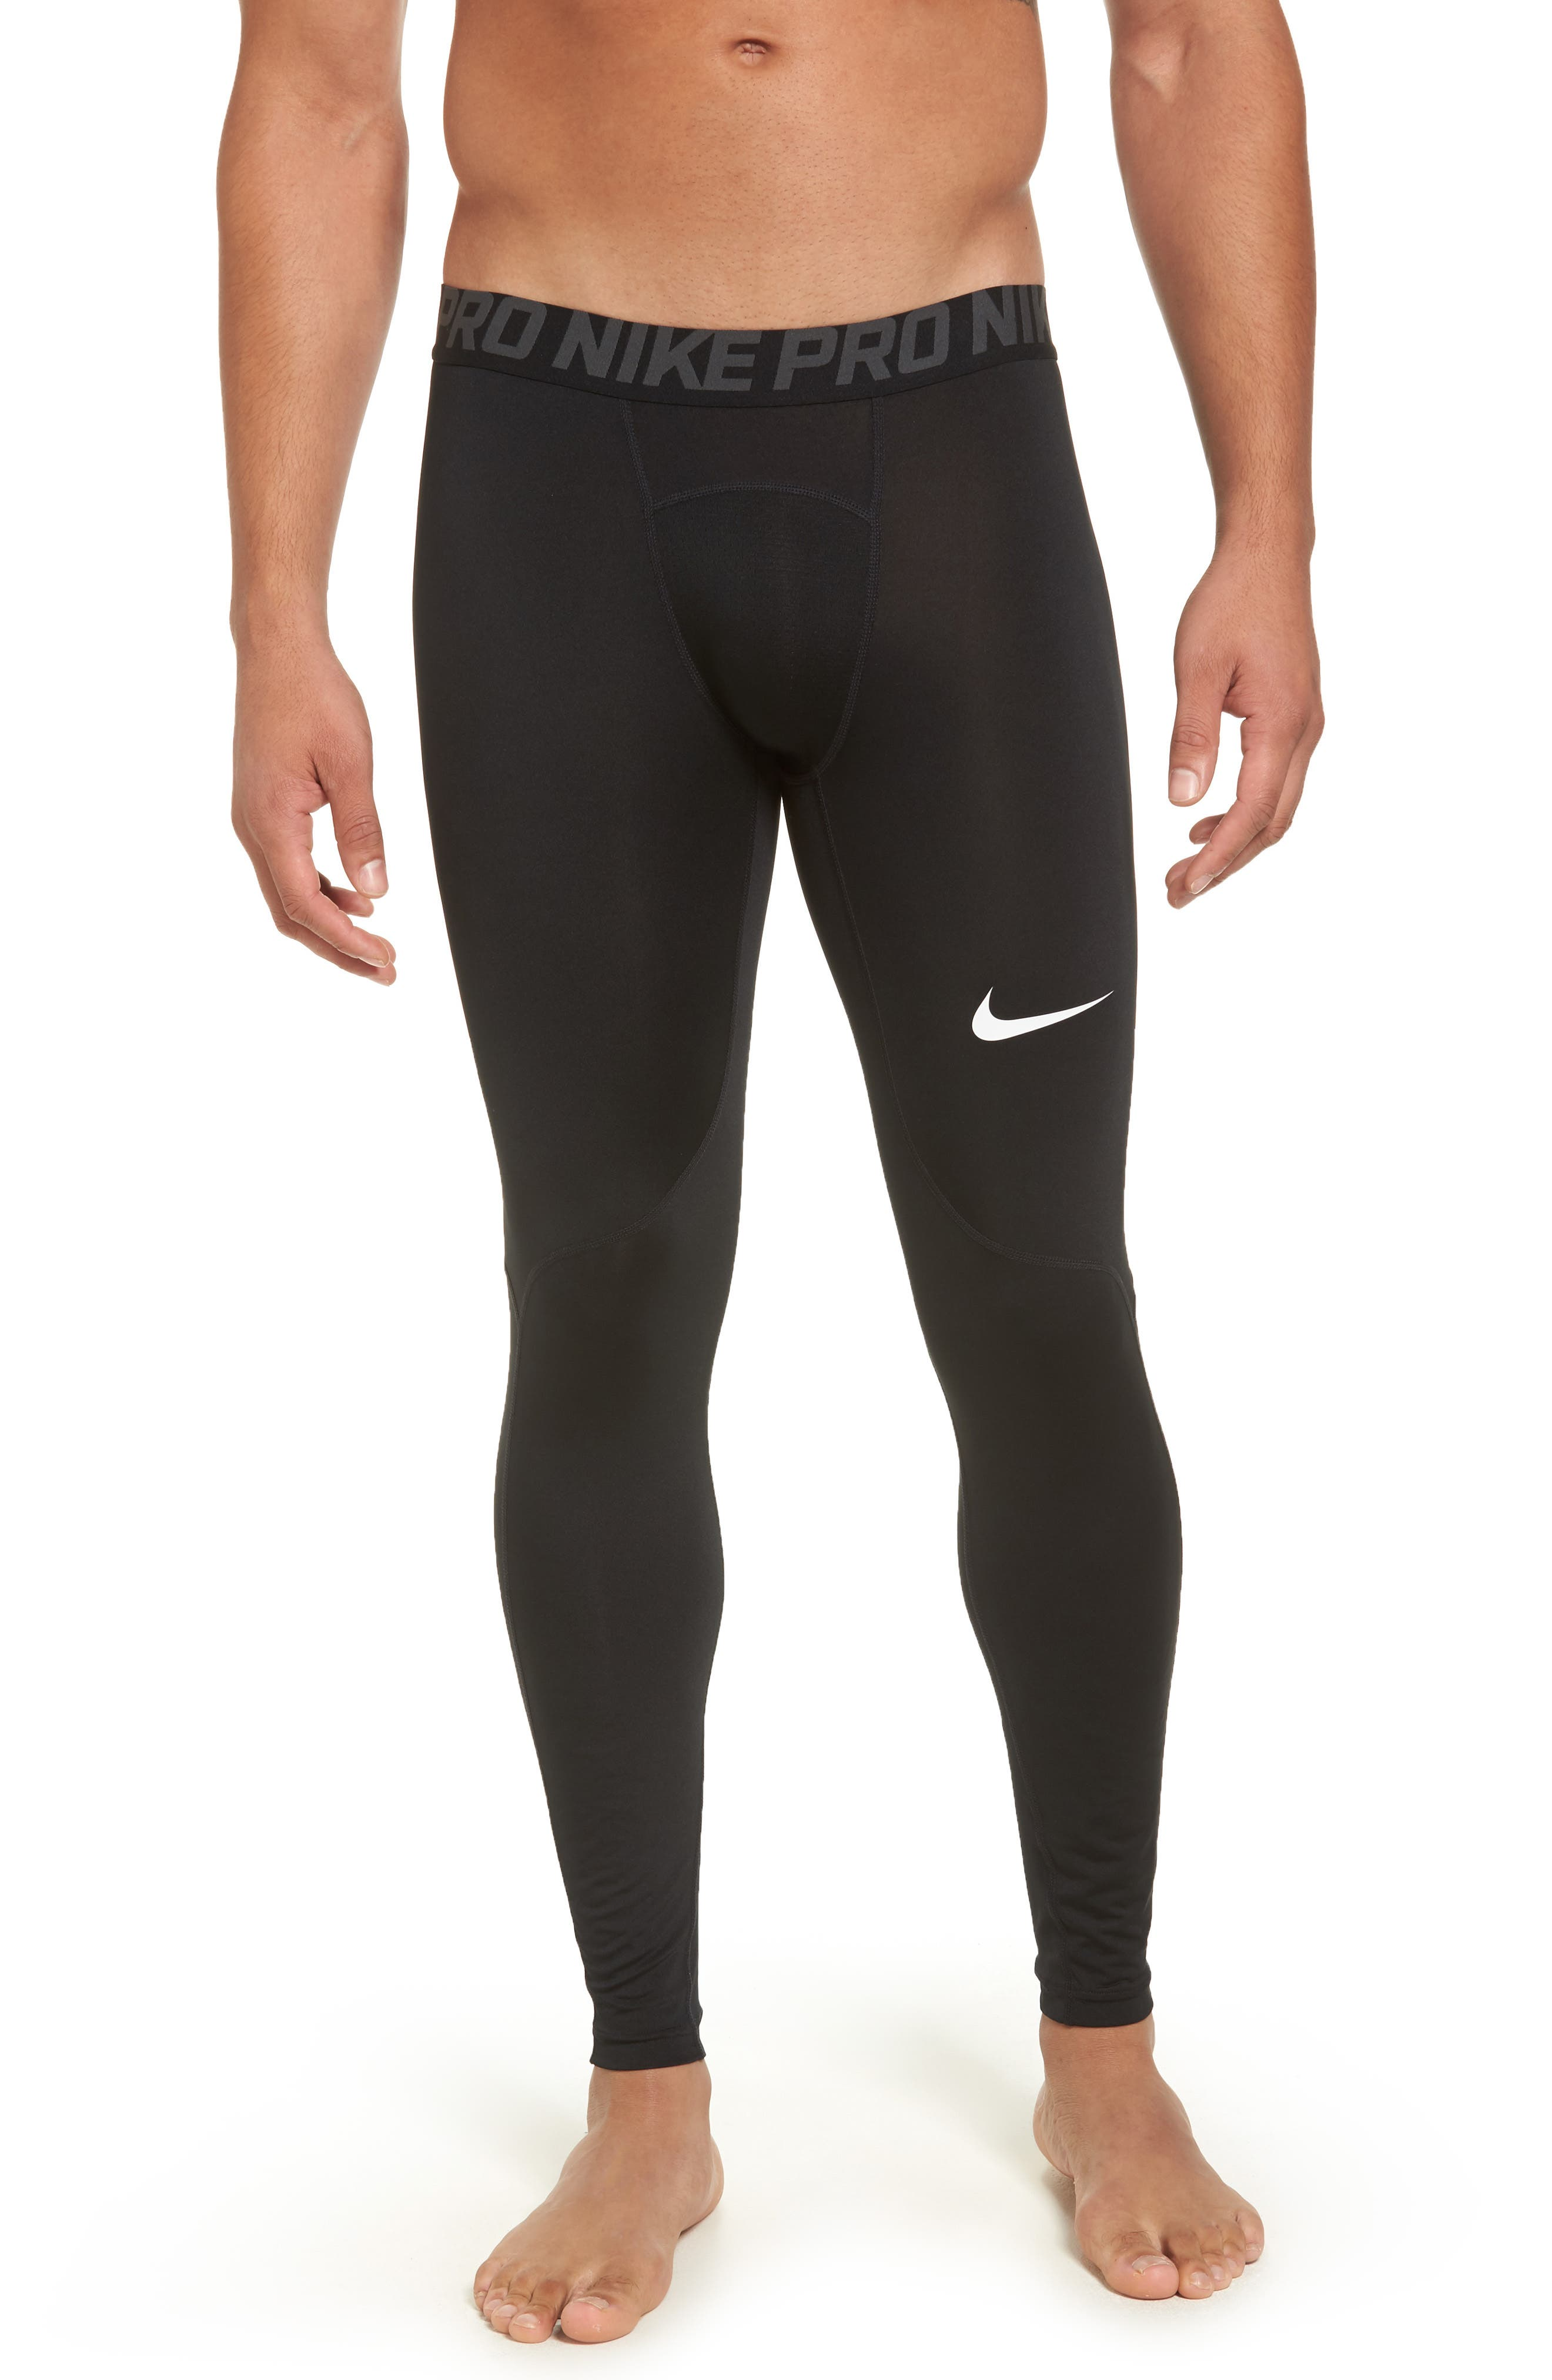 Alternate Image 1 Selected - Nike Pro Three Quarter Training Tights